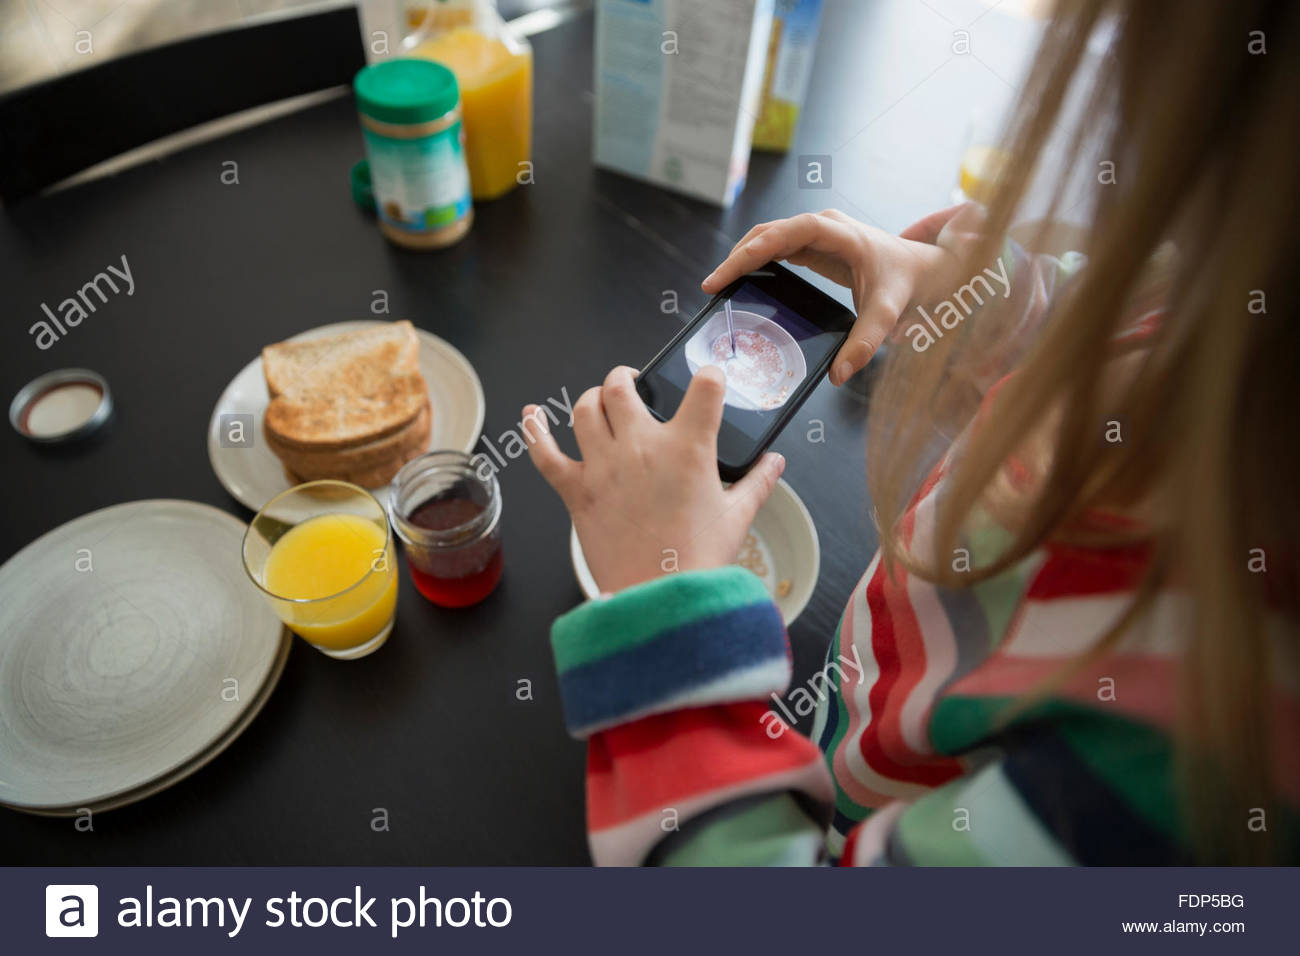 Girl photographing breakfast with camera phone - Stock Image